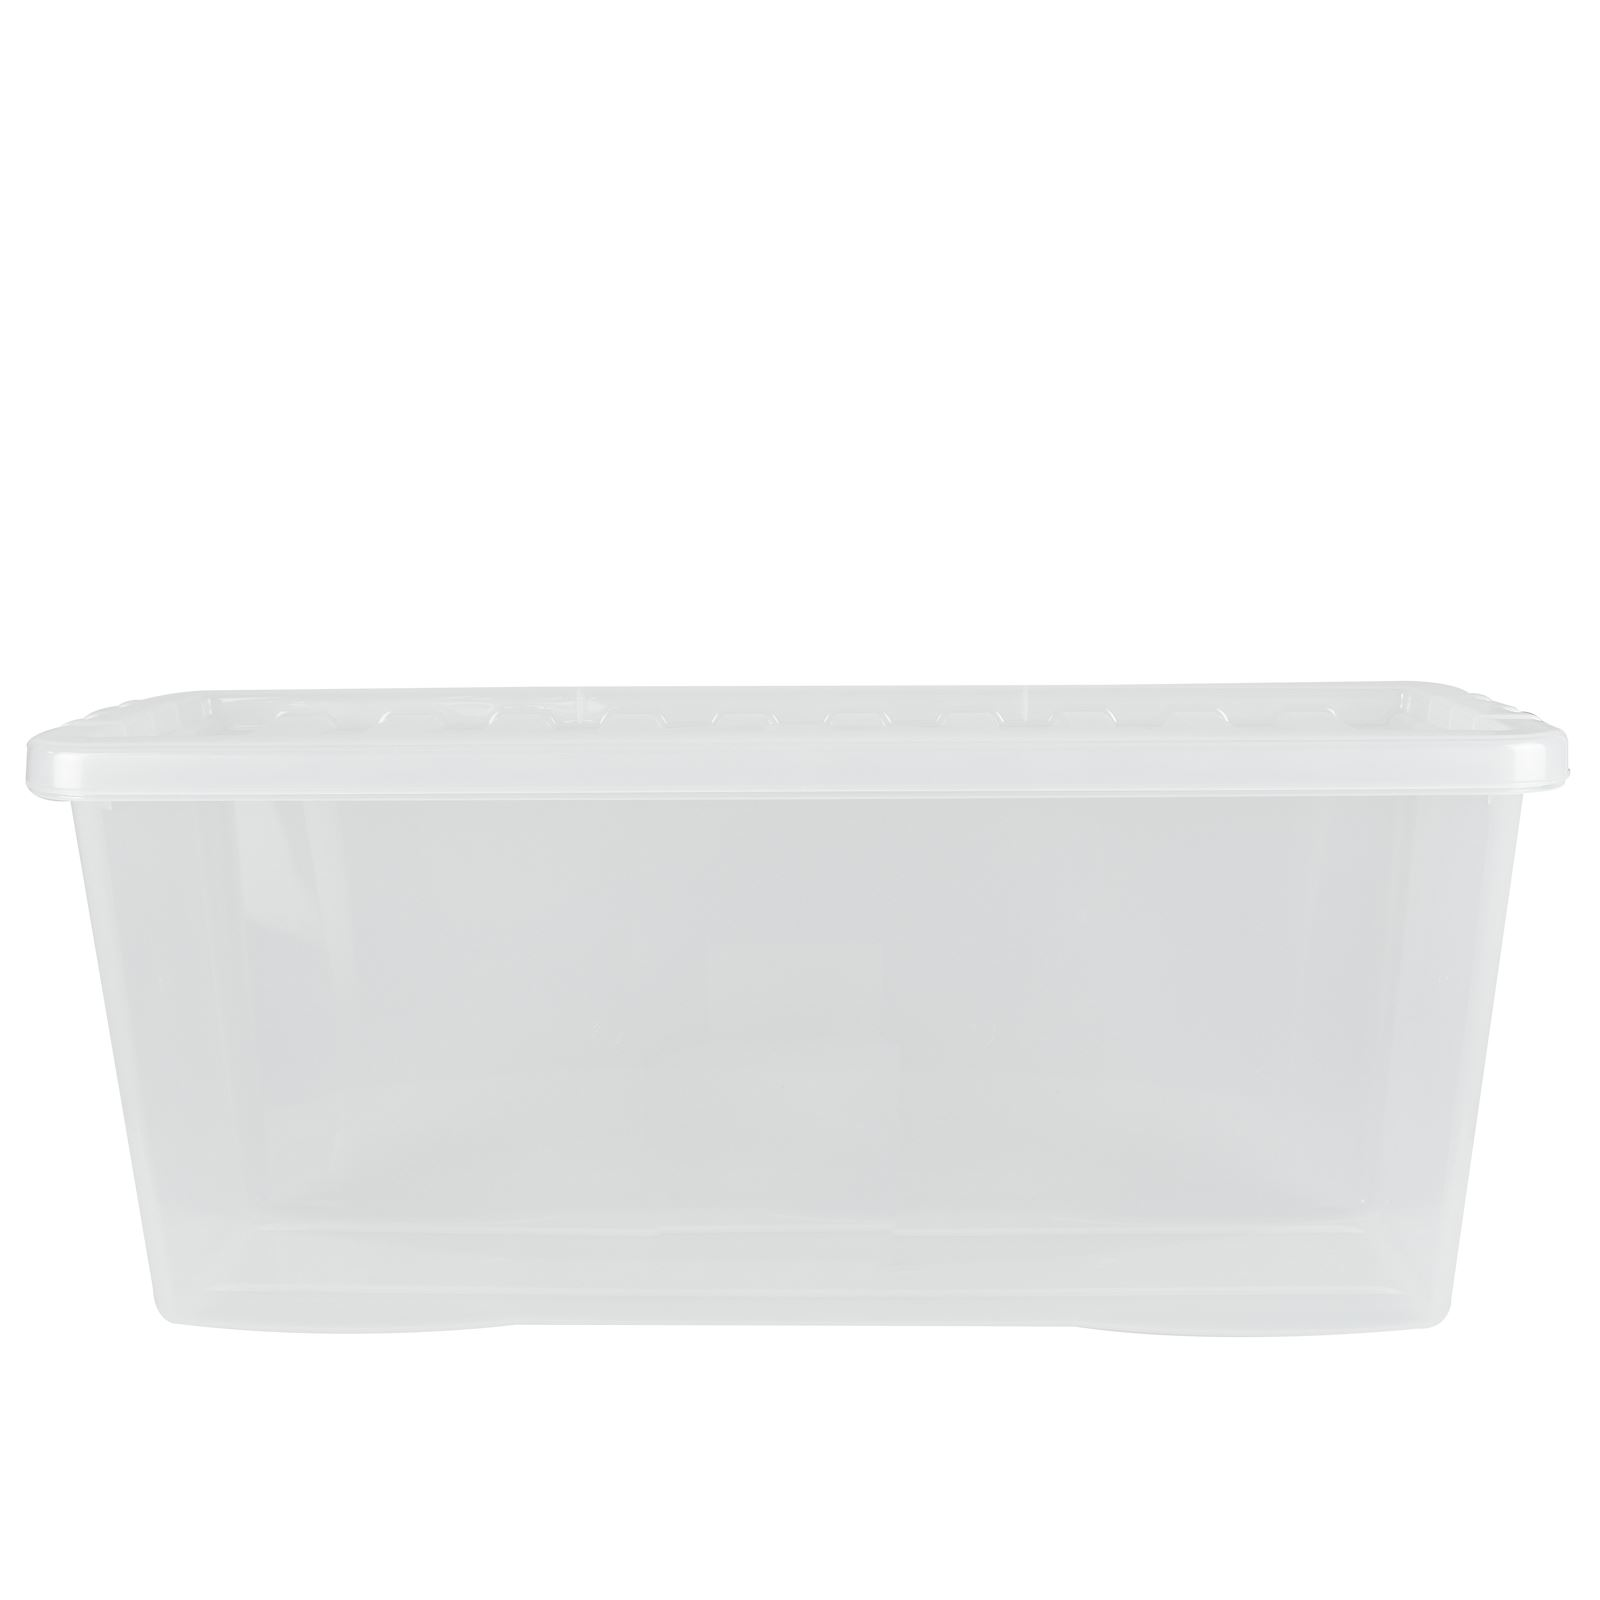 Wham-Crystal-Clear-Plastic-Storage-Box-Secure-Clip-on-Lid-Under-Bed-Space-Save thumbnail 11